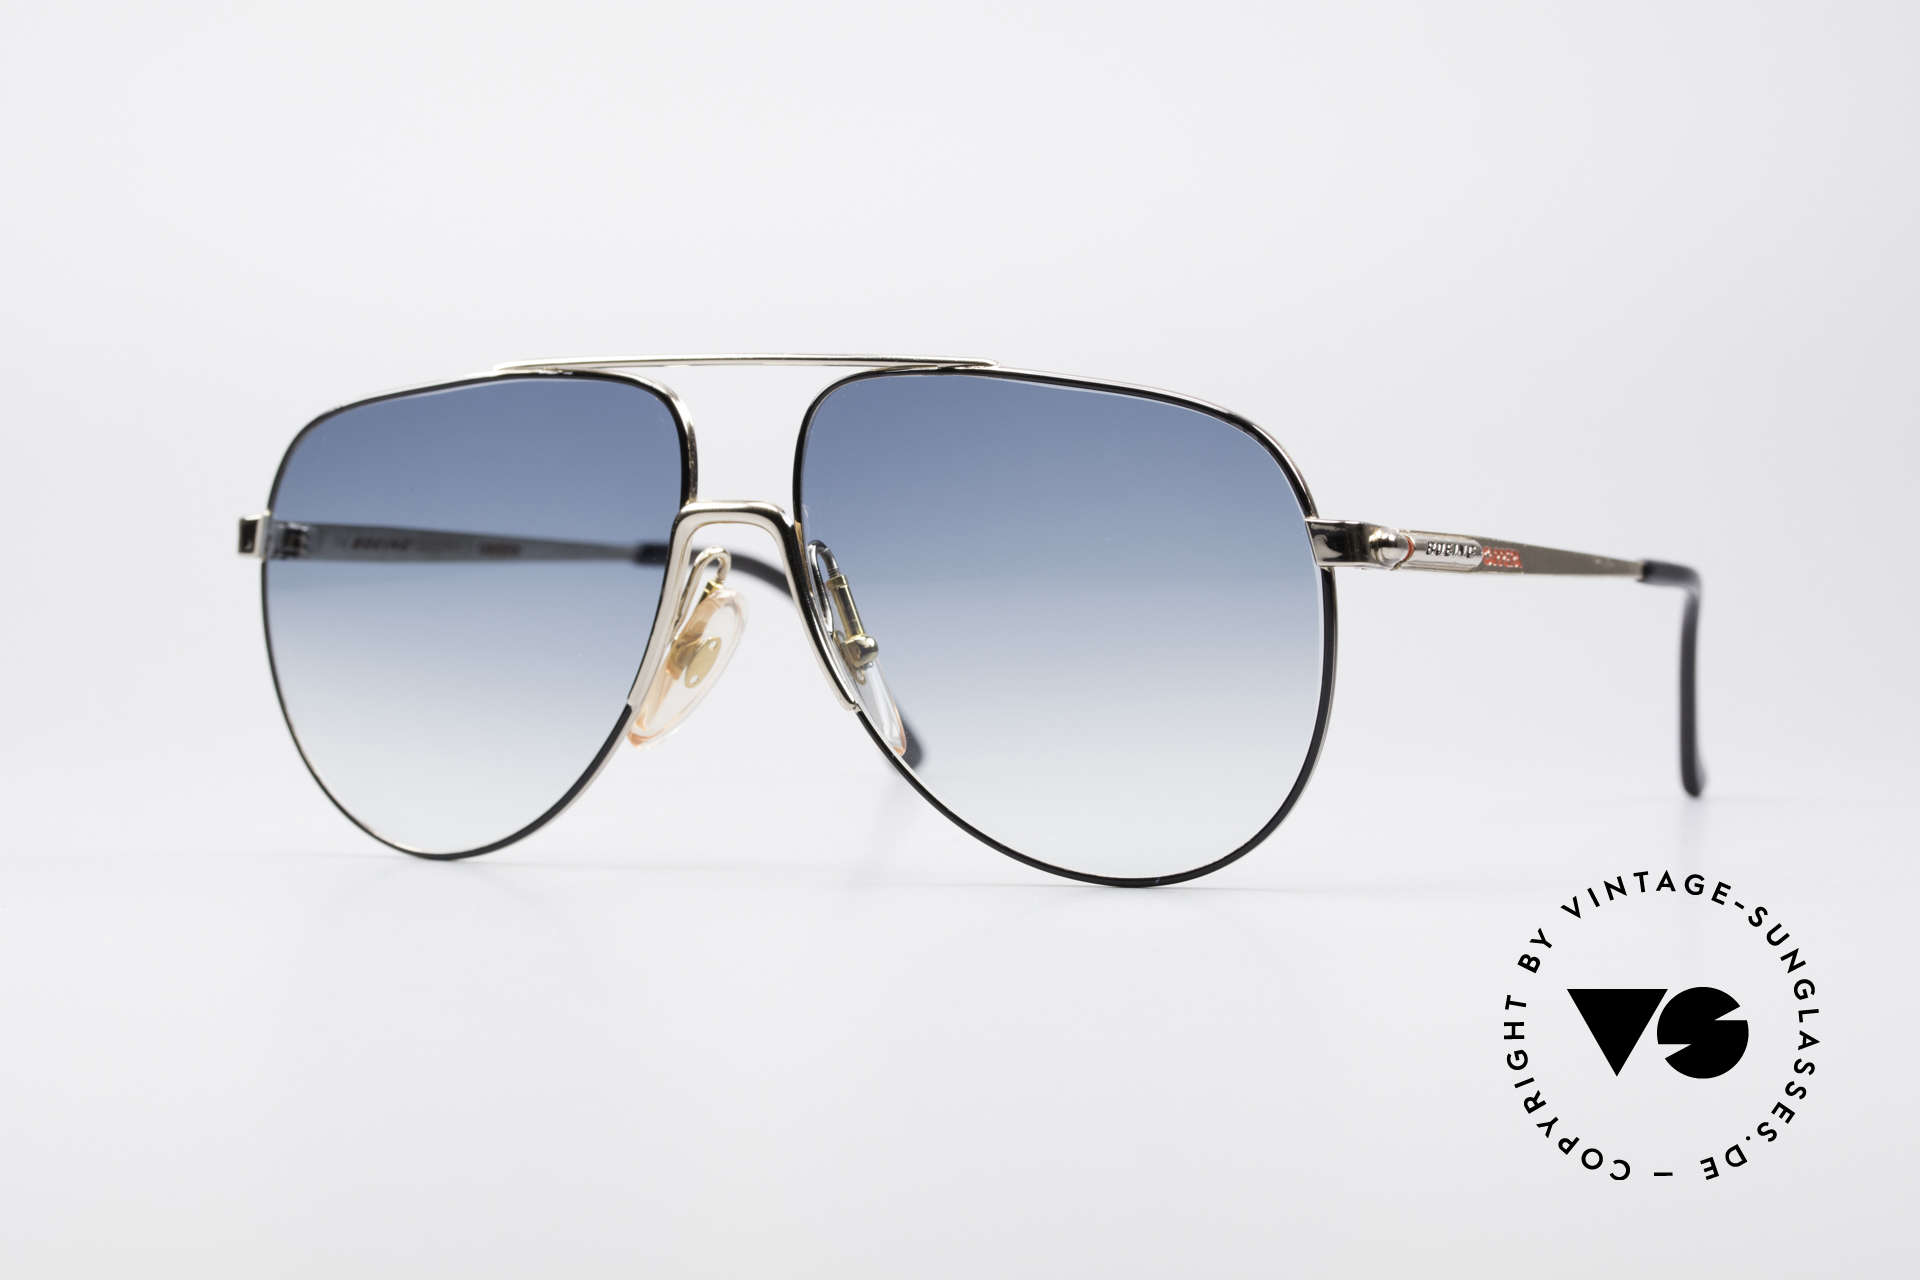 Boeing 5730 True Aviator 80s Sunglasses, real aviator sunglasses of the late 1980's by CARRERA, Made for Men